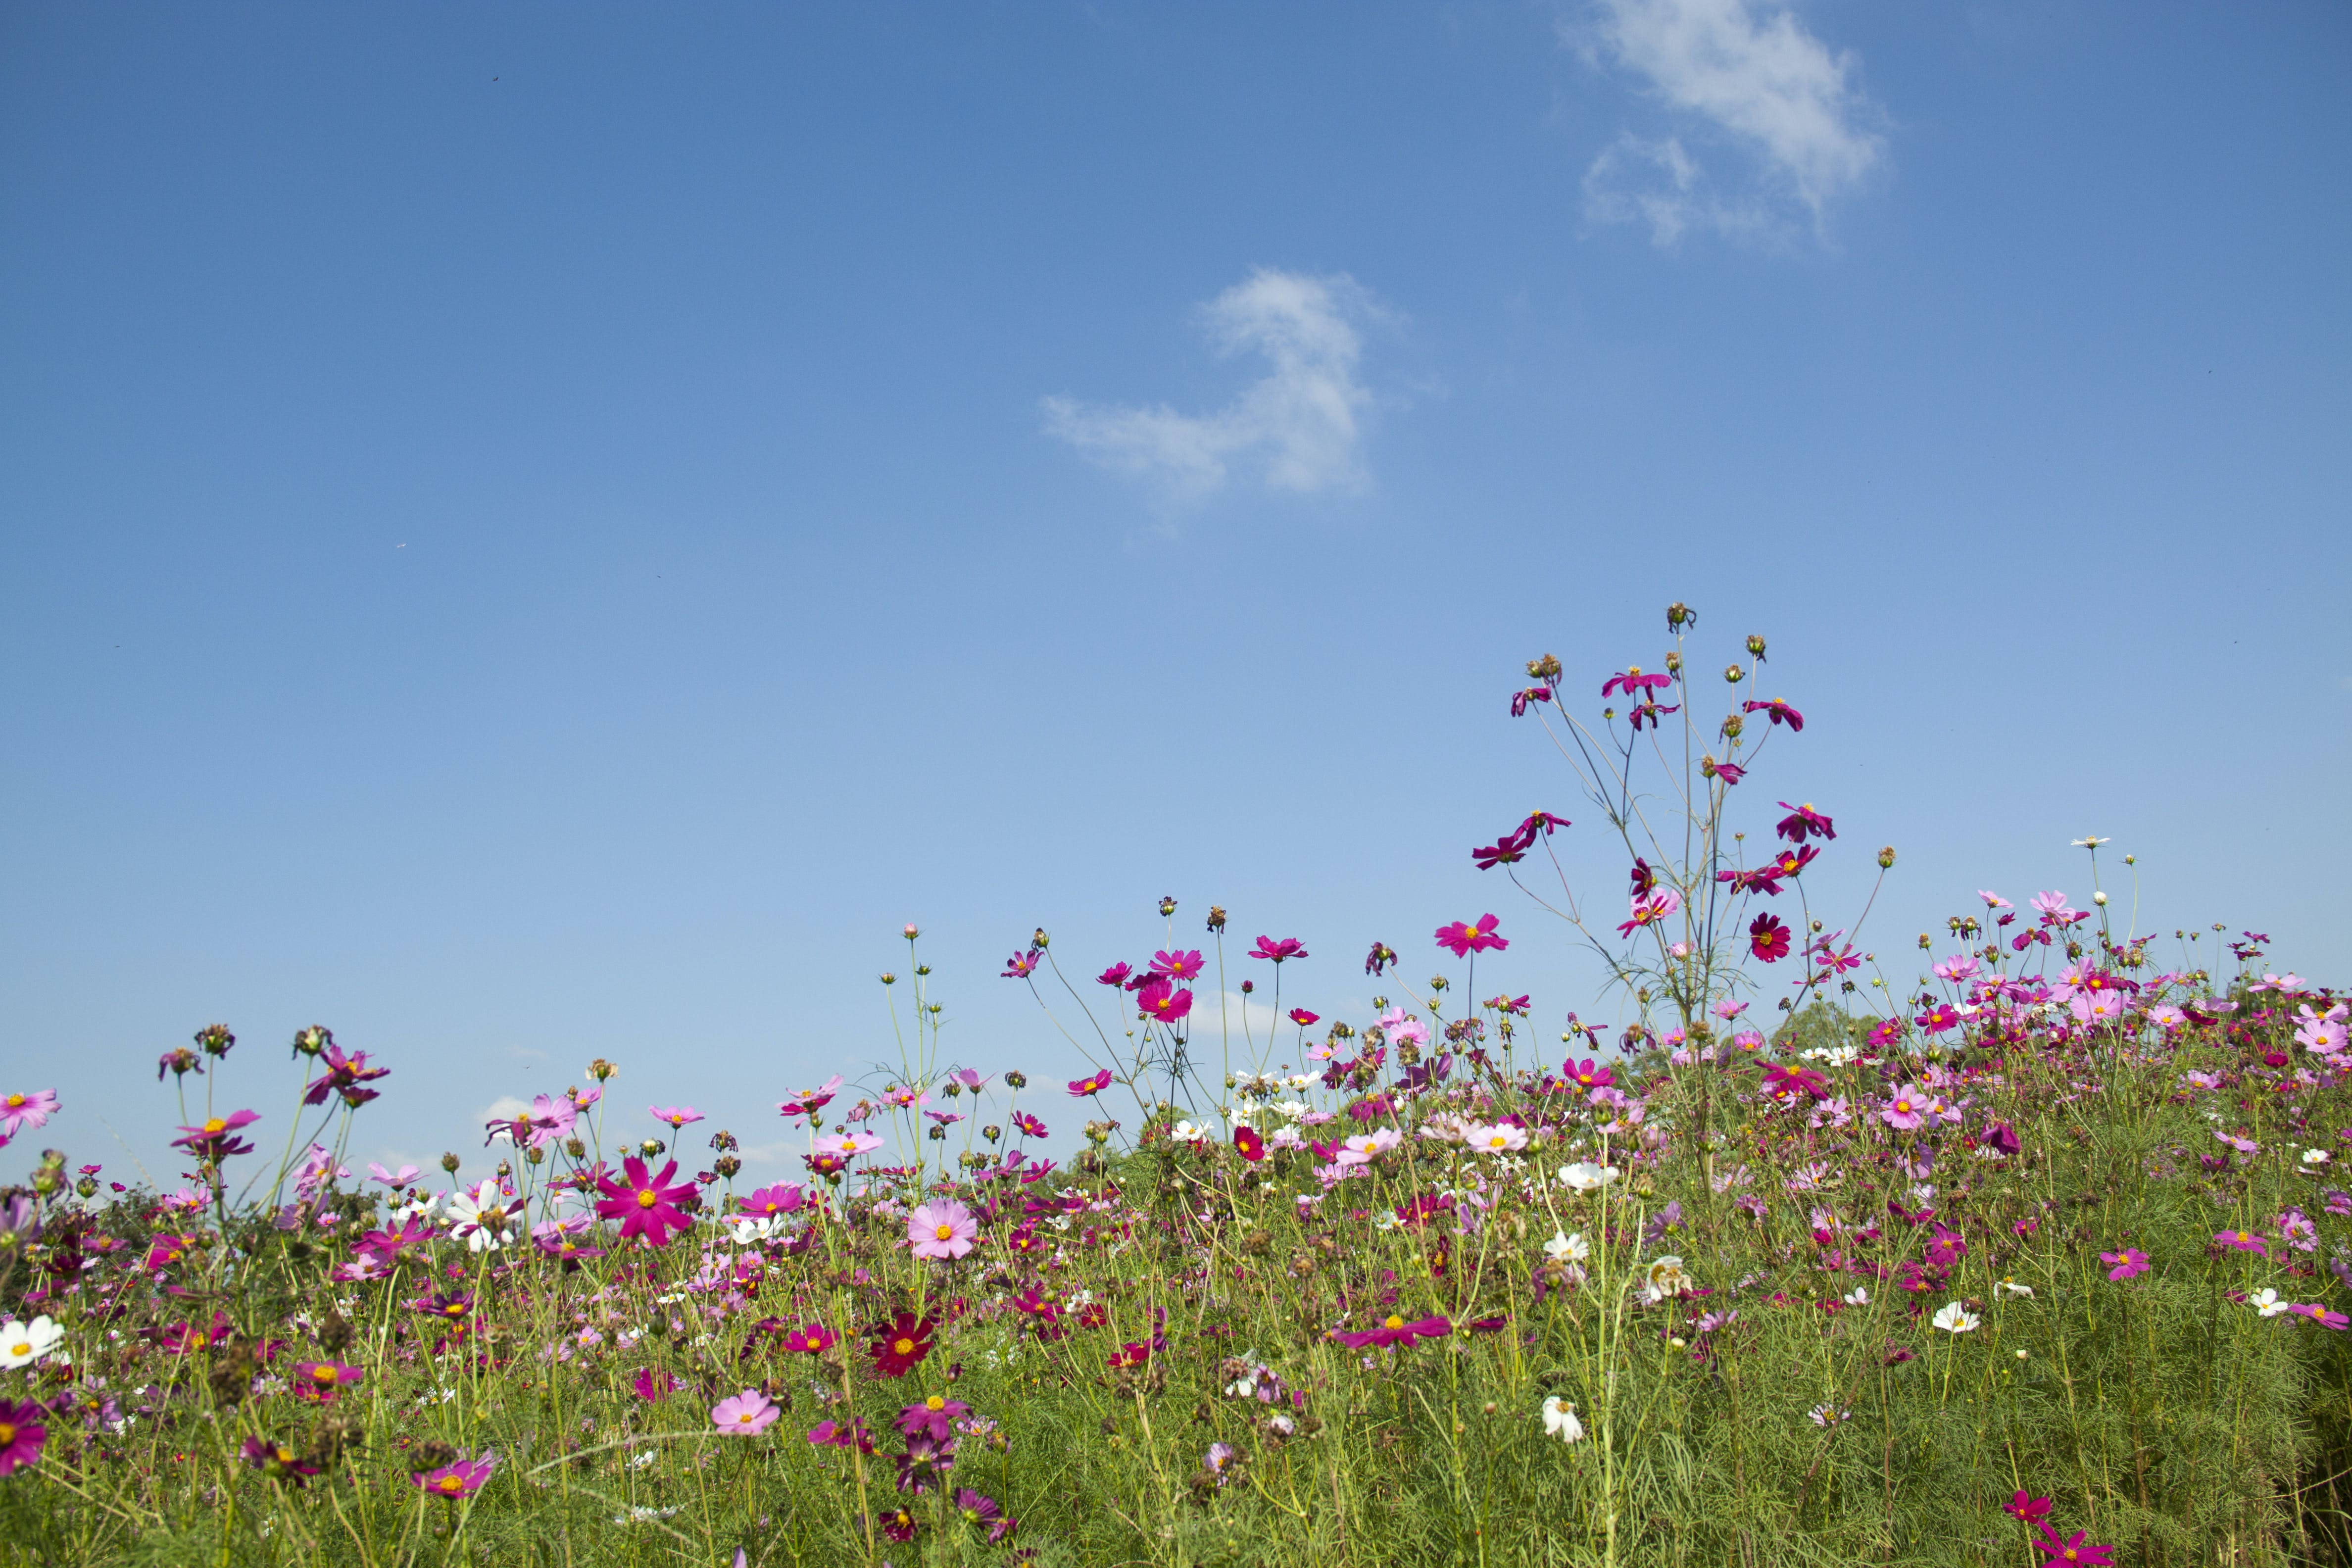 Purple and Pink Flowers Under White Clouds during Day Time